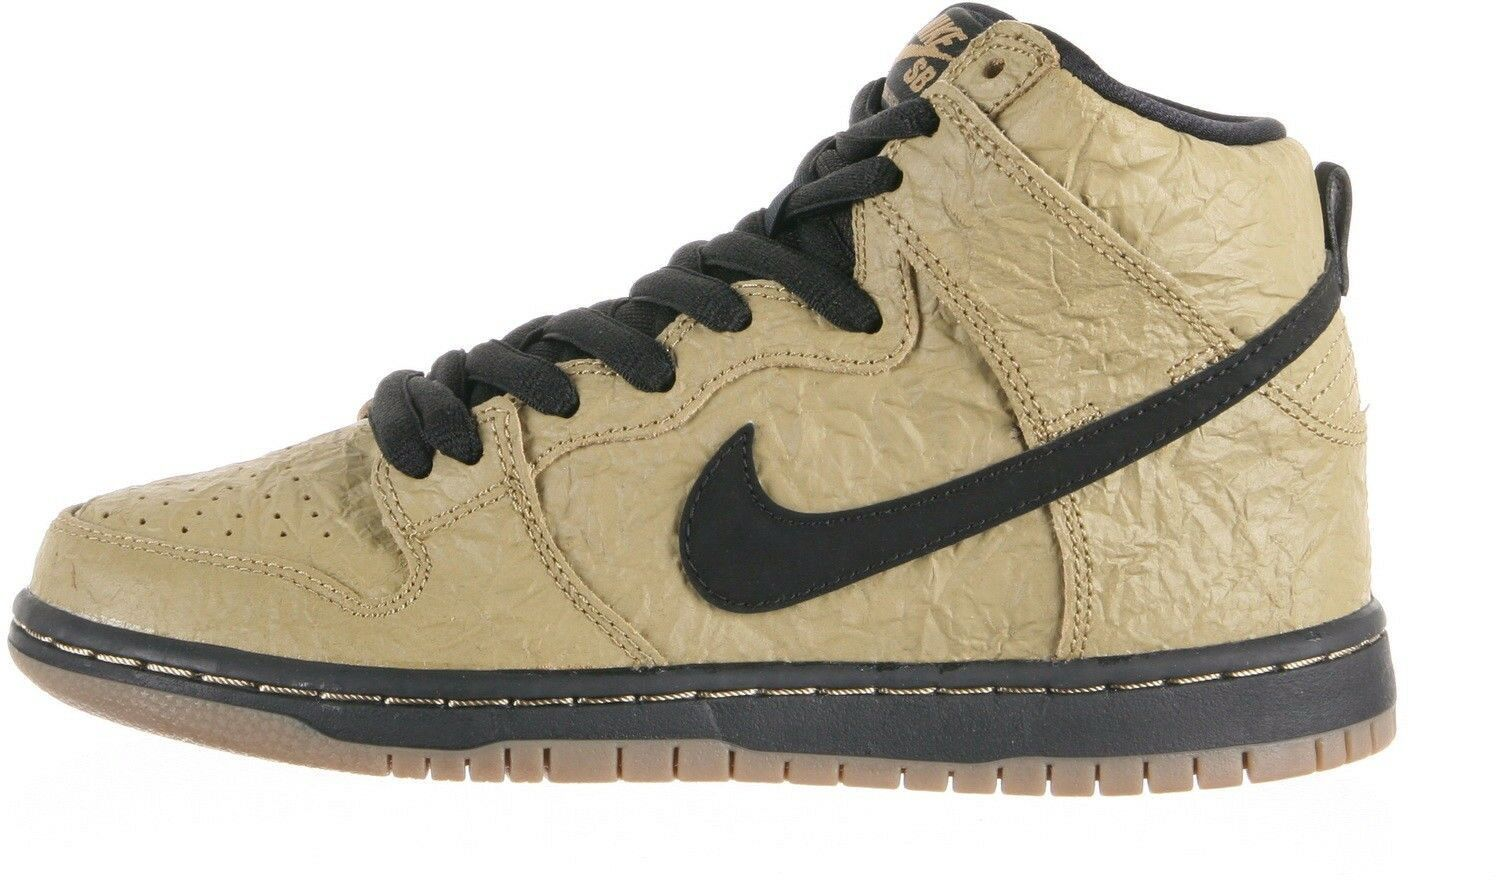 Nike DUNK HIGH PREMIUM SB Filbert noir Gum Dark (D) Brown (D) Dark (566) homme chaussures c57044